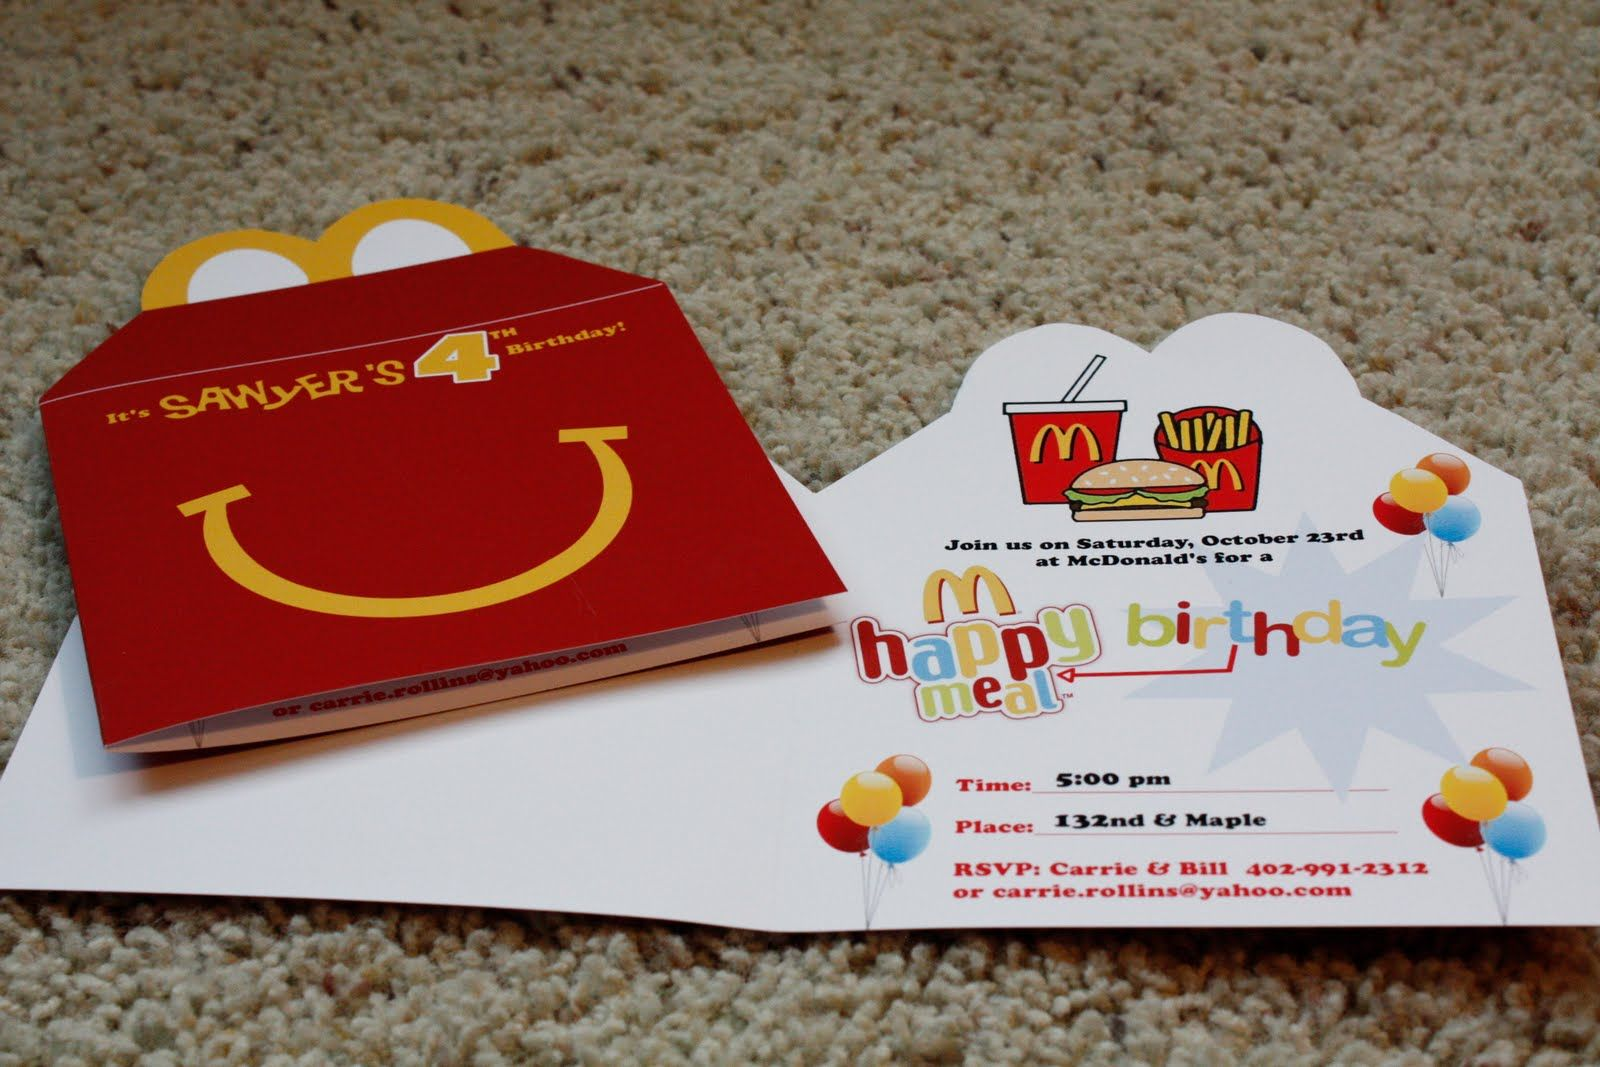 Mcdonalds Birthday Party Invitations  Mcdonalds birthday party